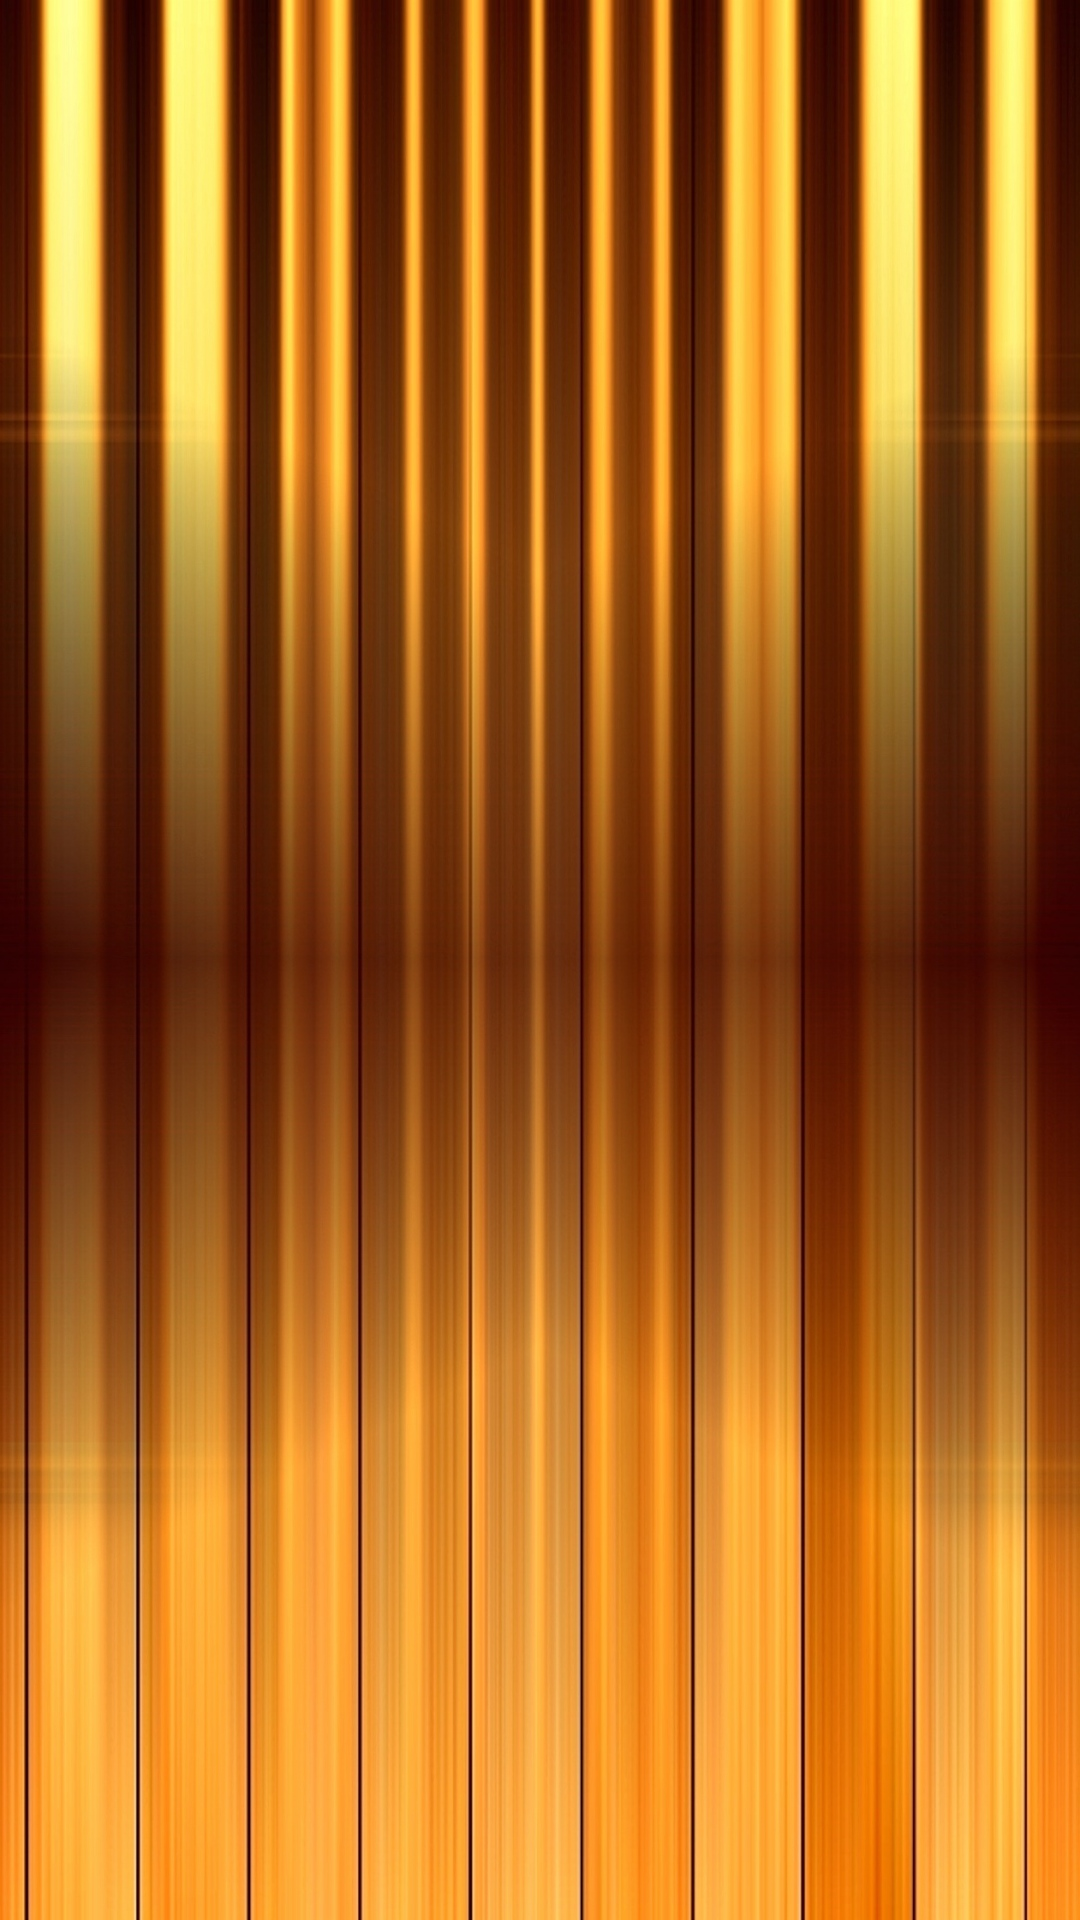 1080x1920-strip-line-abstraction-wallpaper-wp340624